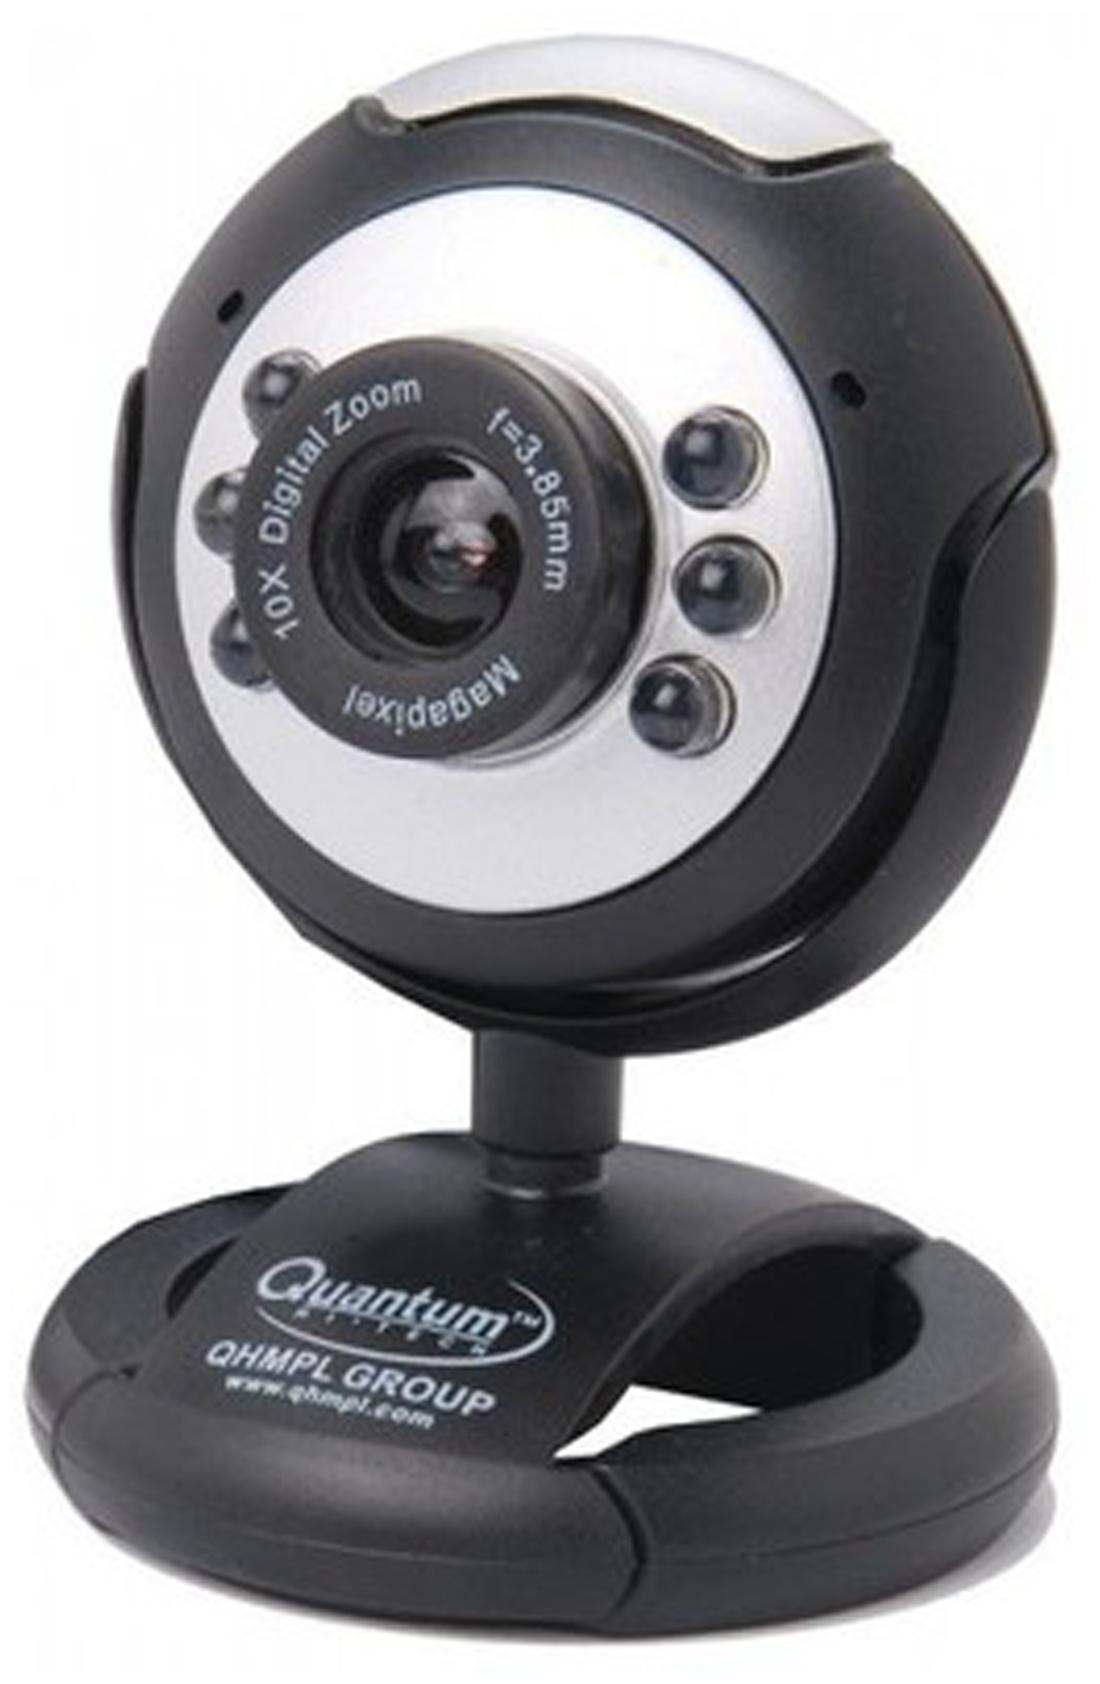 Quantum 495LM Web Cam (0.5 MP VSR/With MIC) (Black)